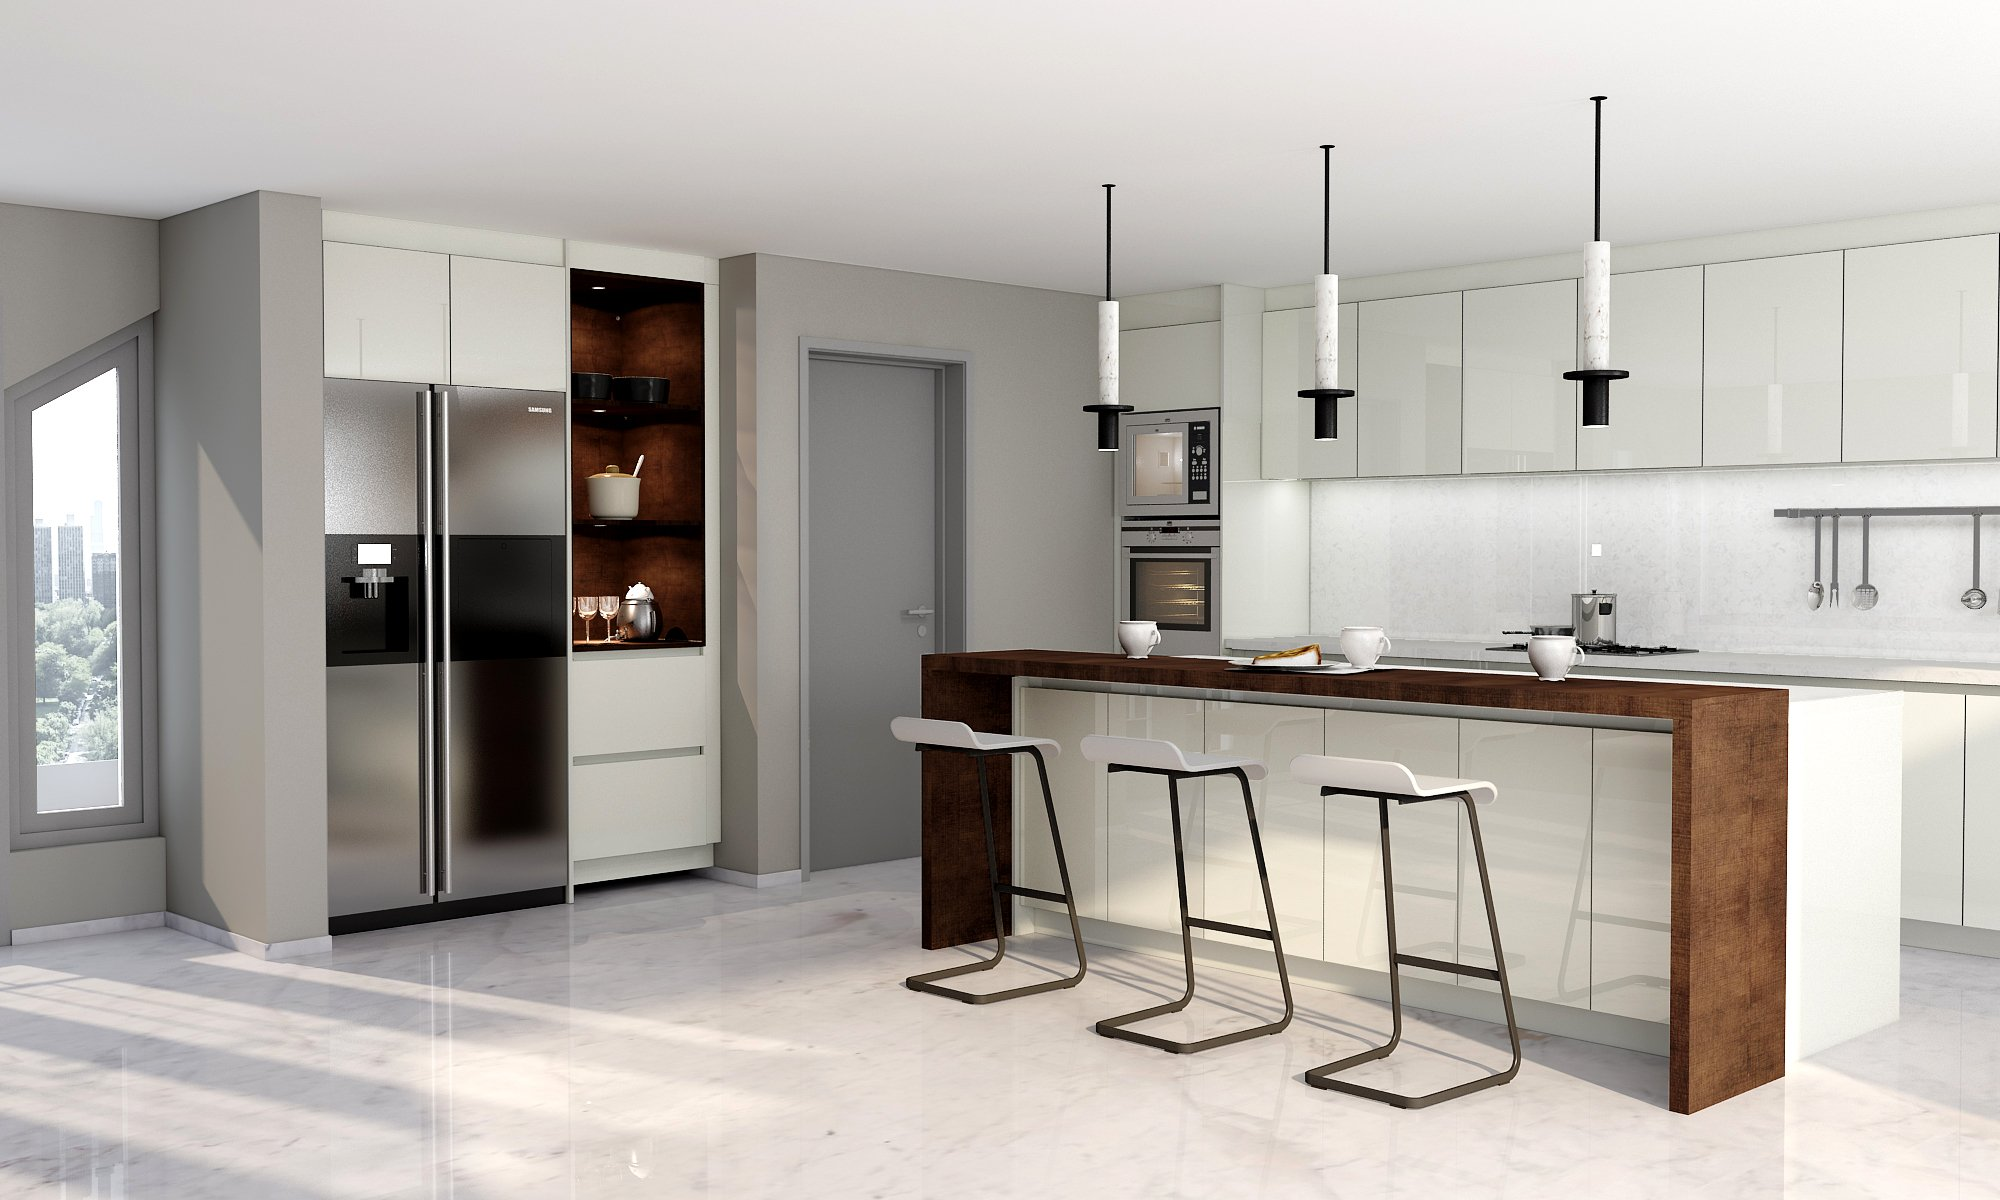 Handlless Gloss Kitchen in Lights Grey Gloss With Island and Breakfast Bar